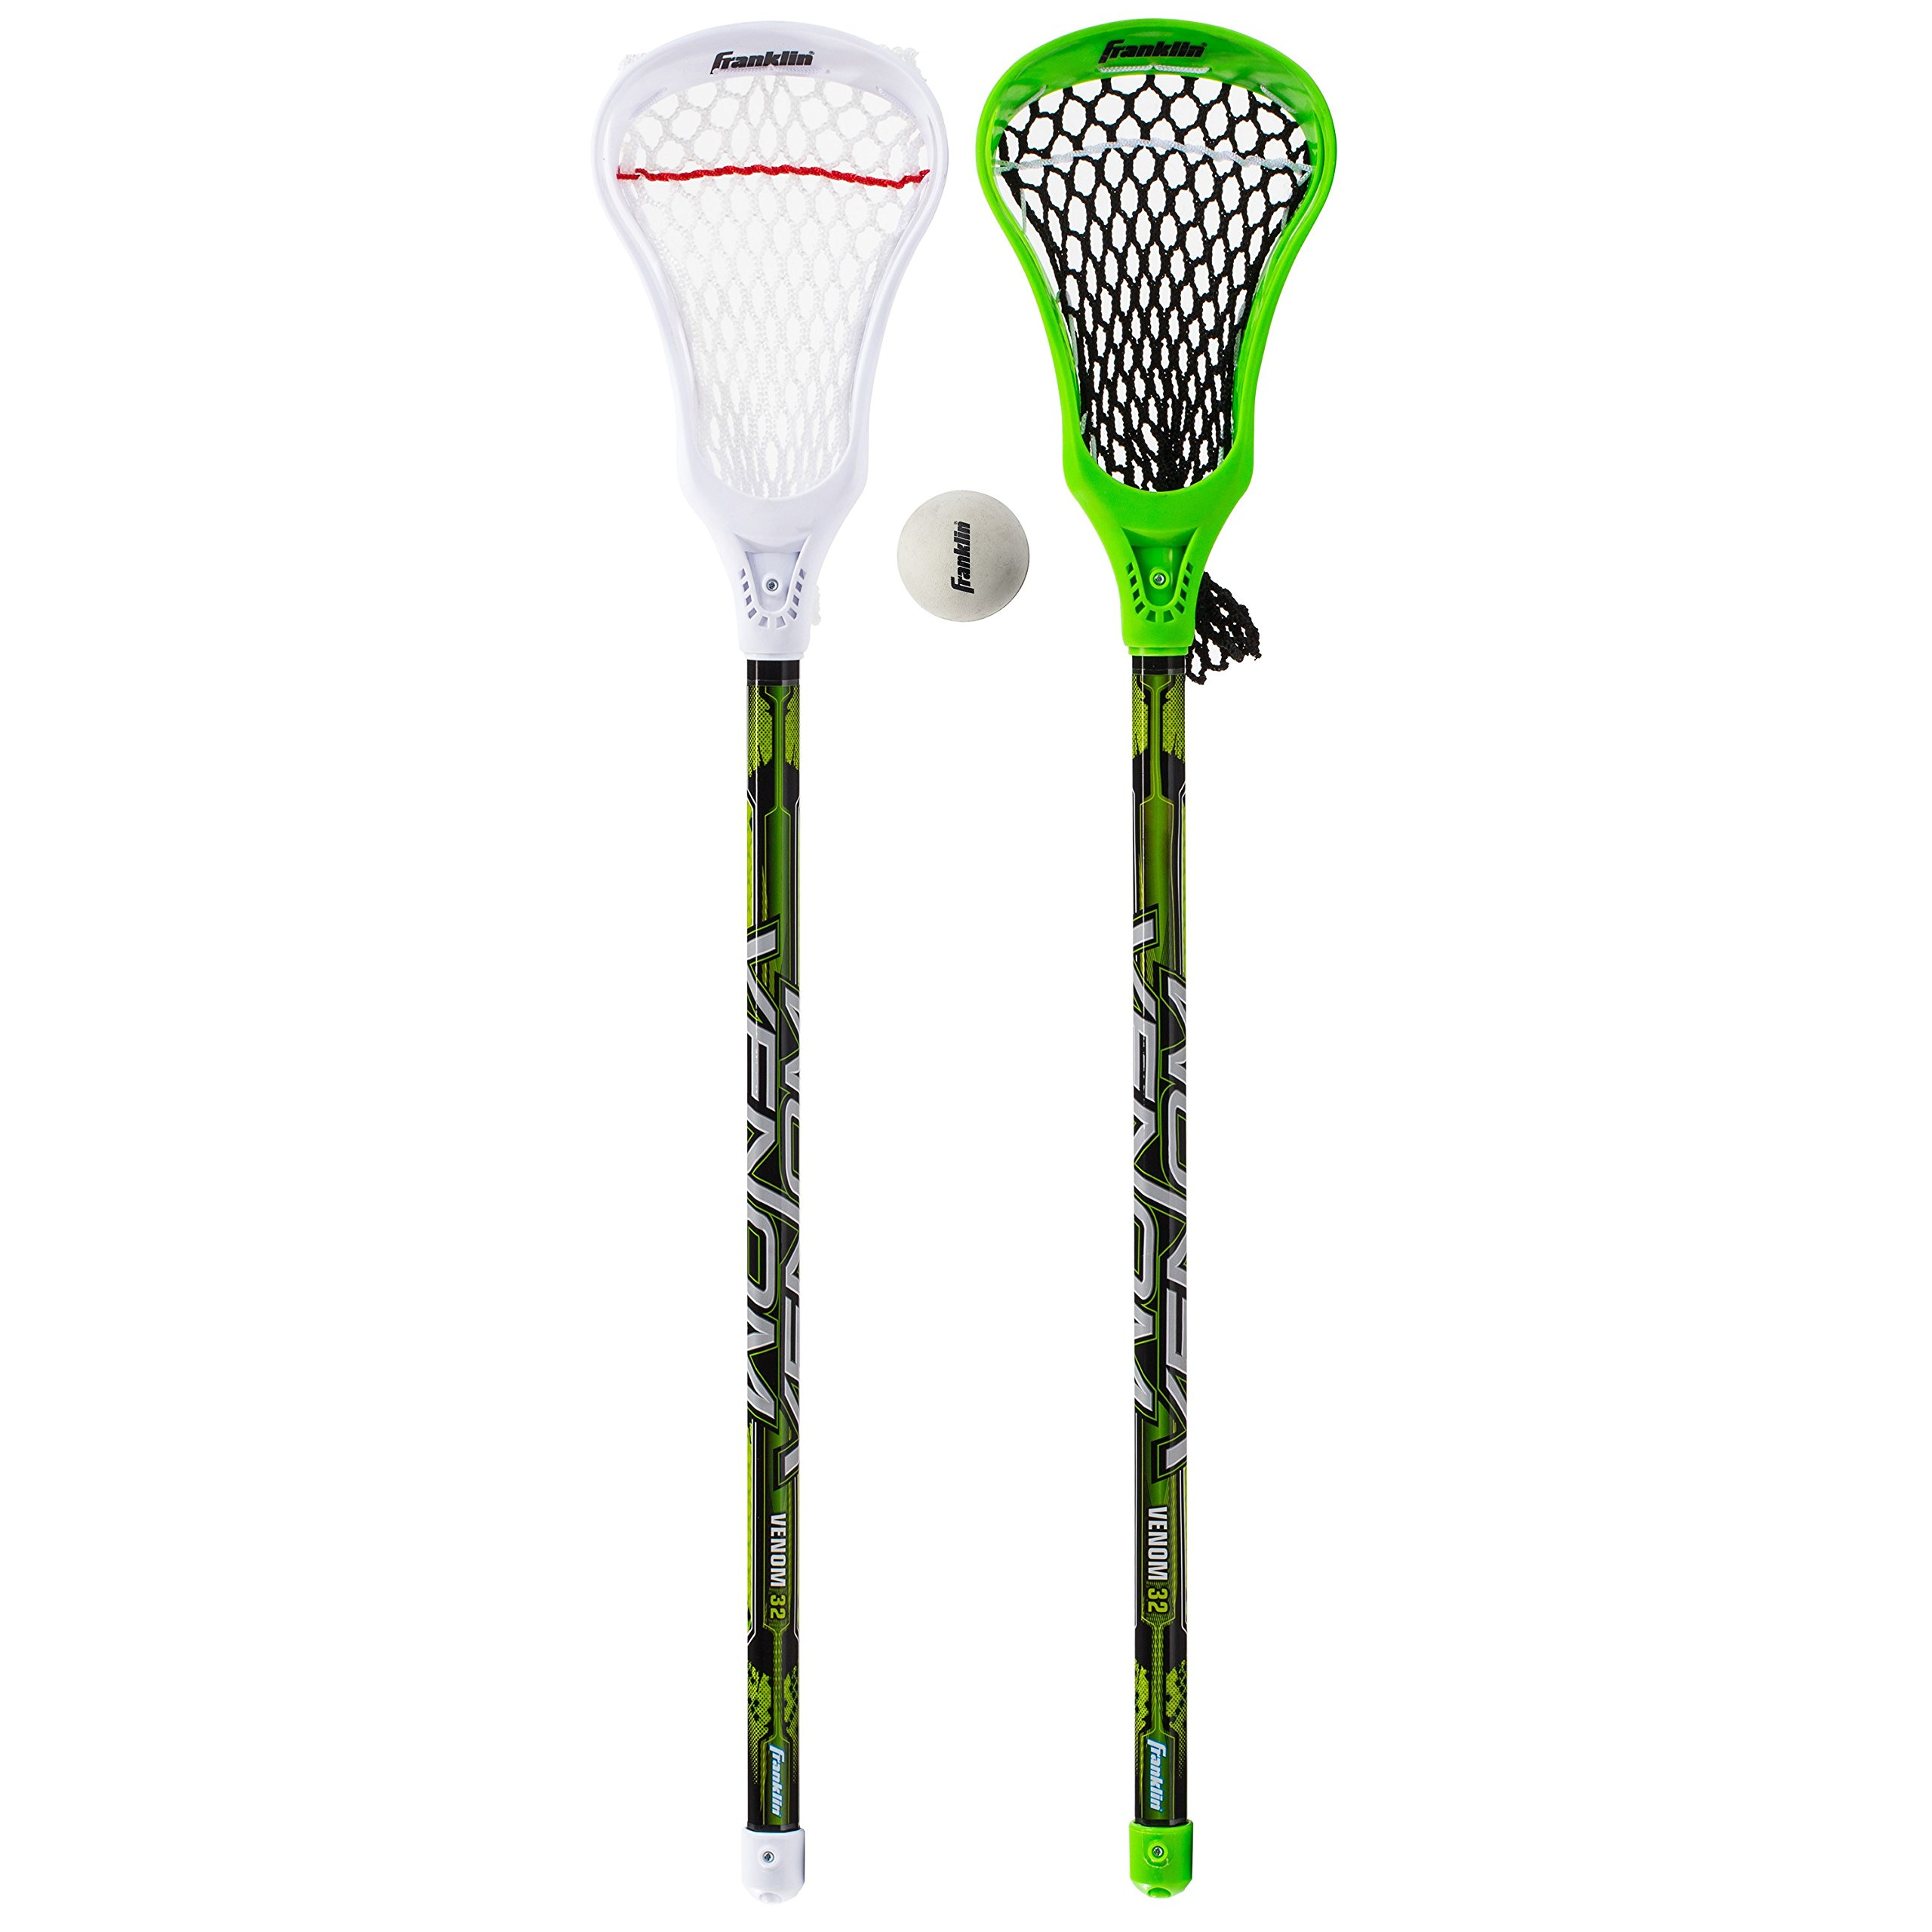 Franklin Sports Lacrosse 2 Stick and 1 Ball Set, Green